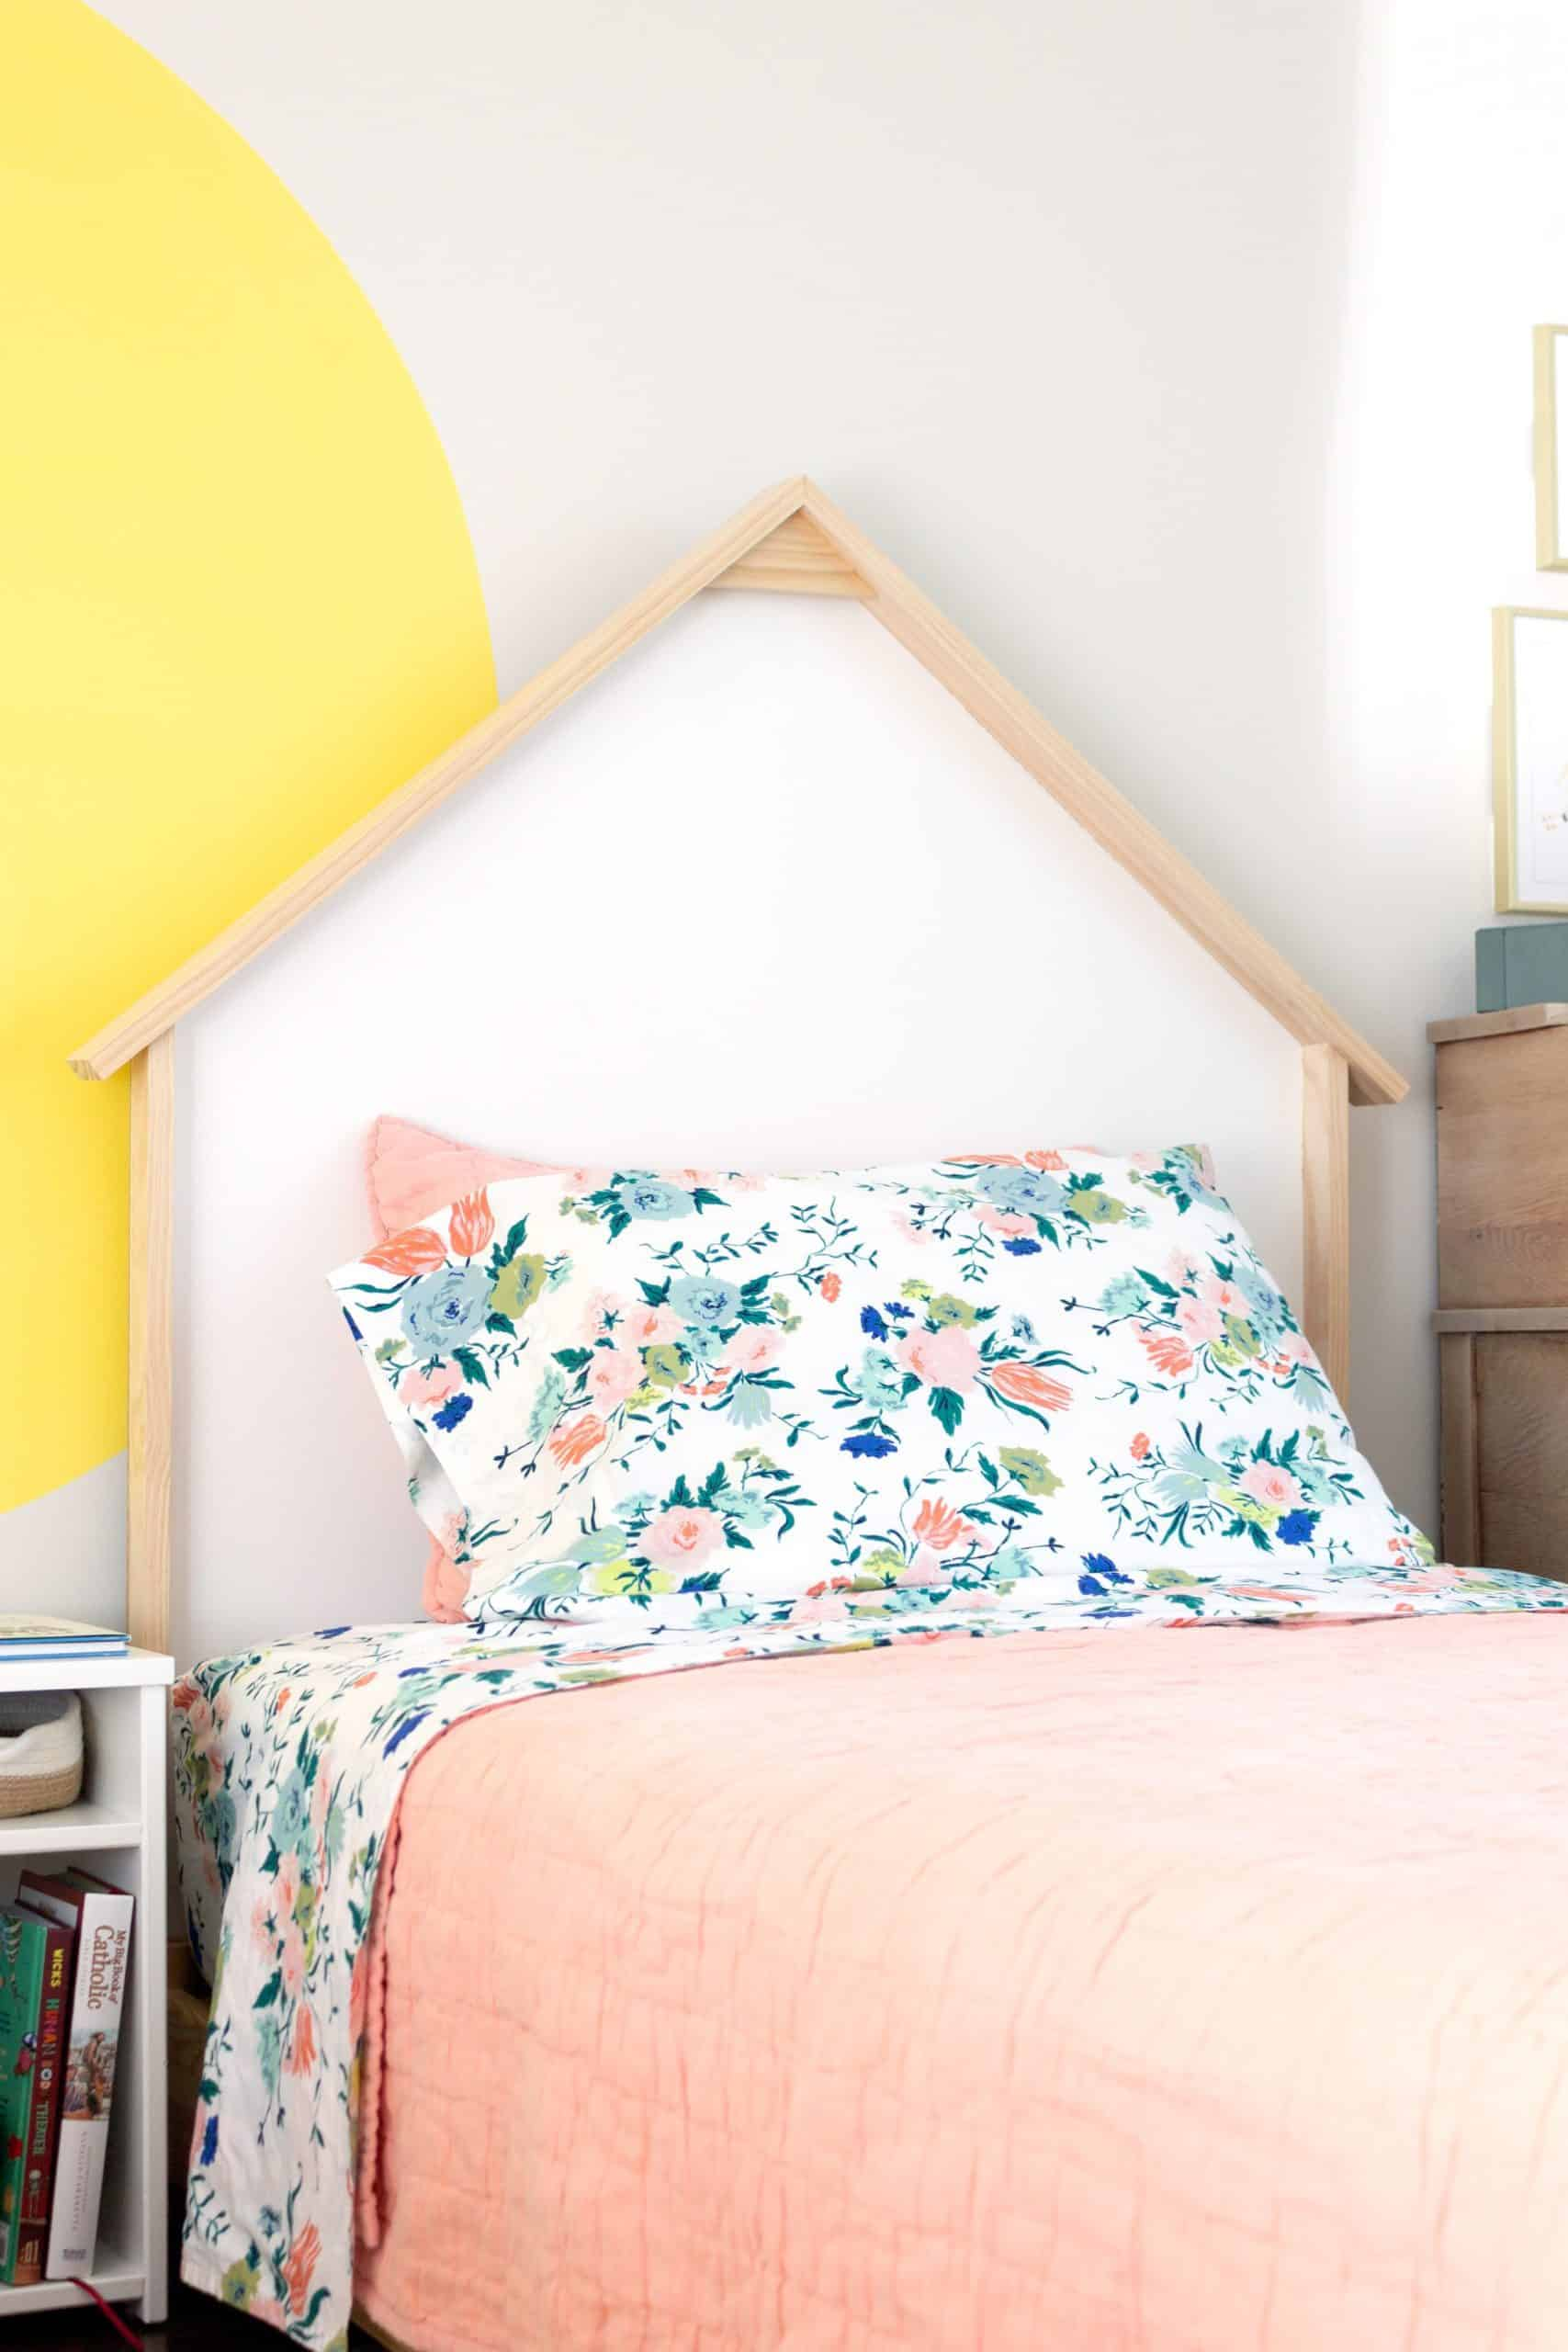 Diy Twin House Headboards One Room Challenge Week 2 Free And Unfettered